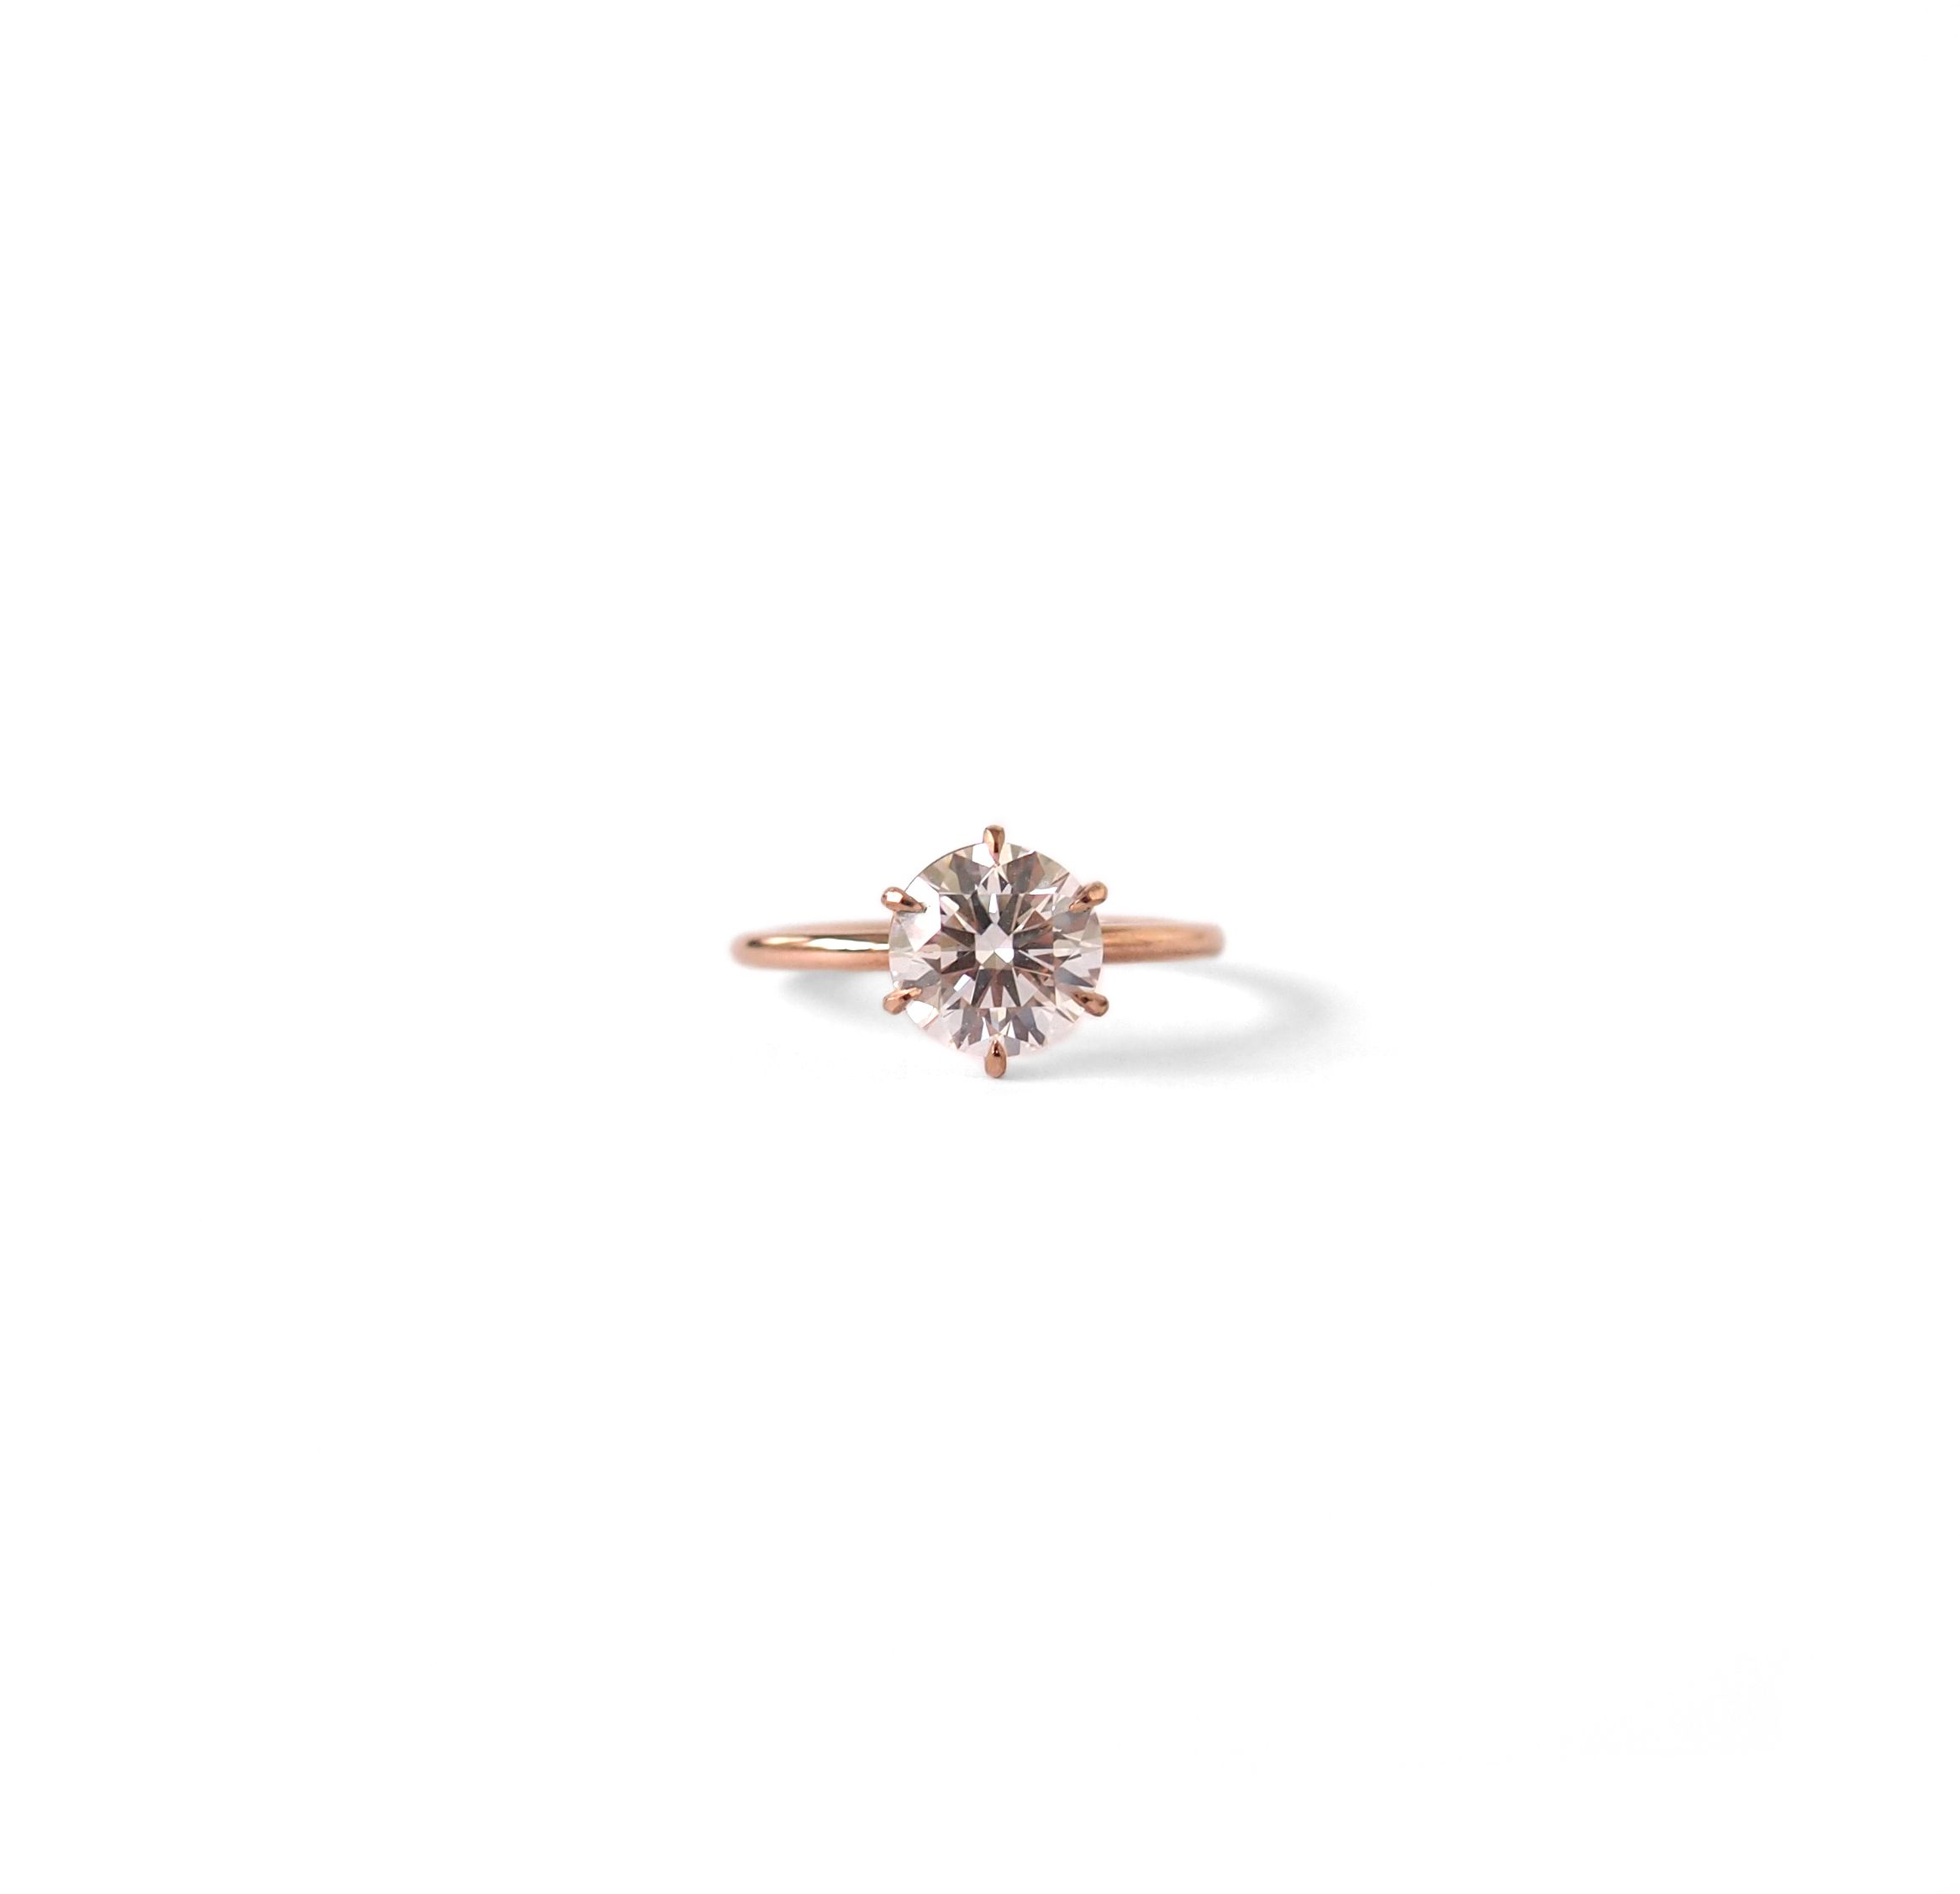 Natalie Marie Jewellery Signature solitaire 6 carat diamond set